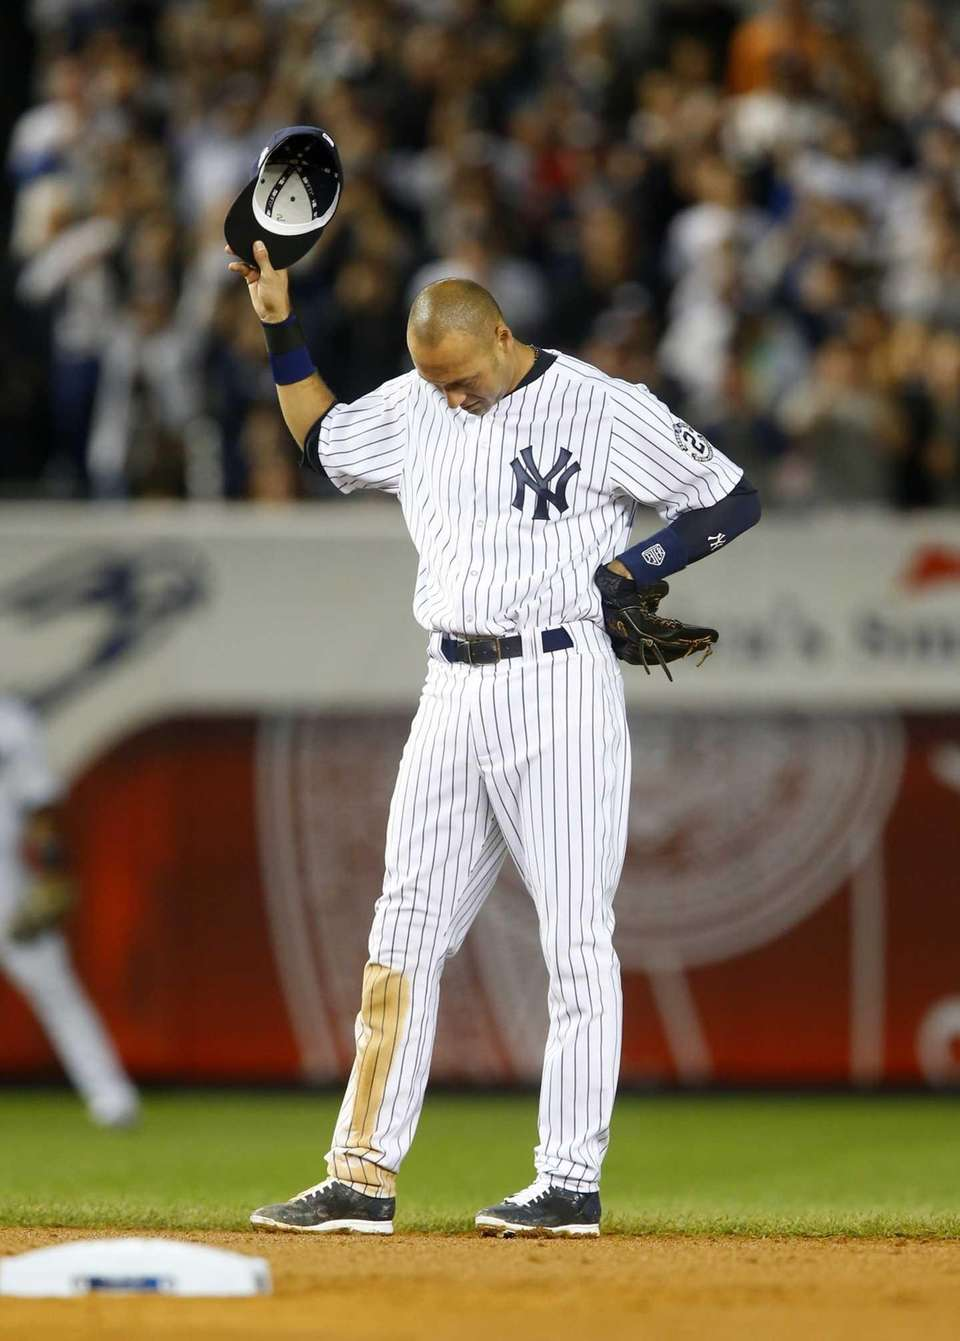 Derek Jeter of the Yankees tips his cap